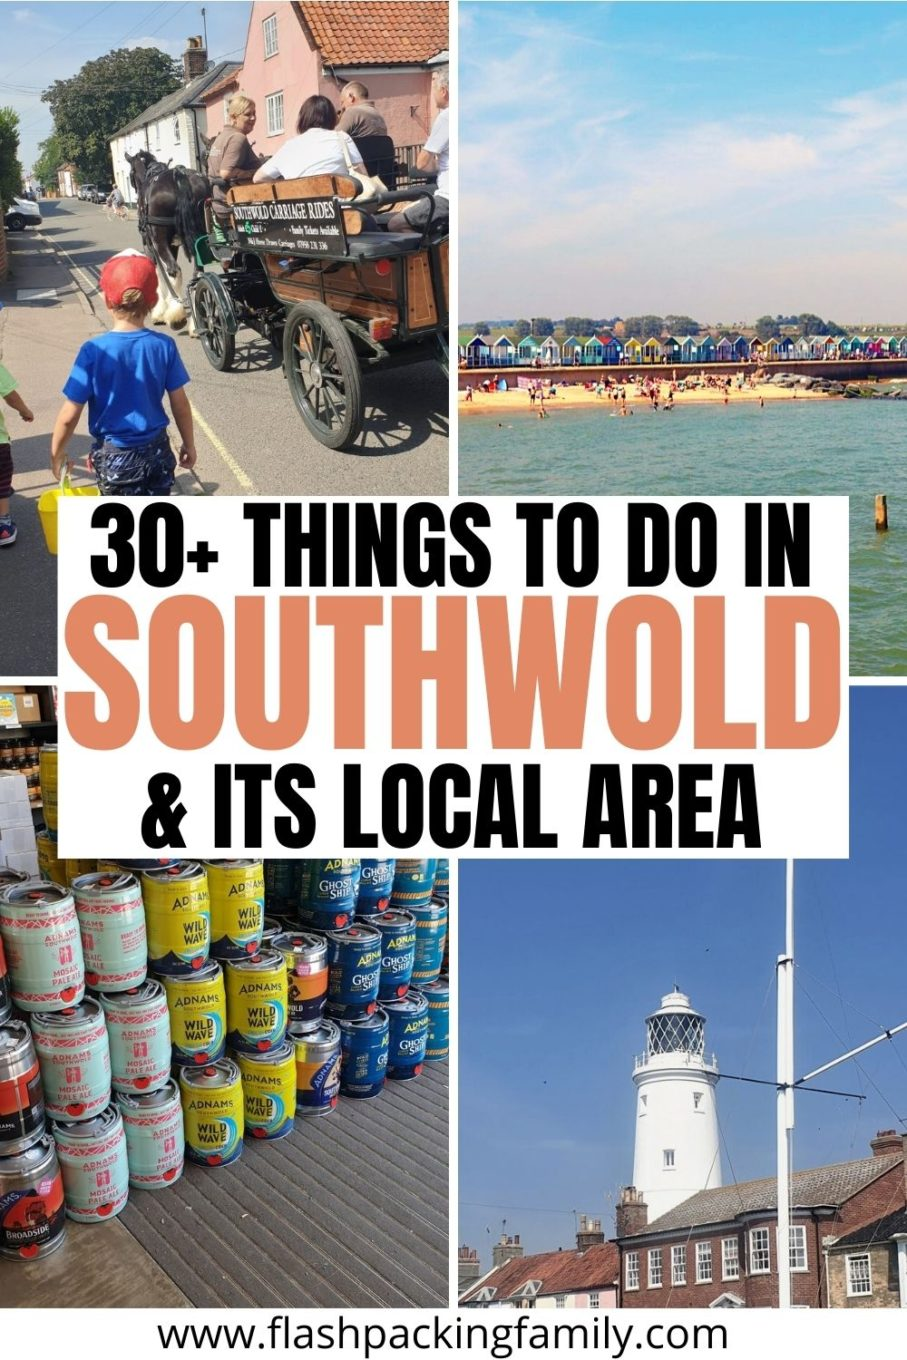 30+ Things to do in Southwold and its local area.